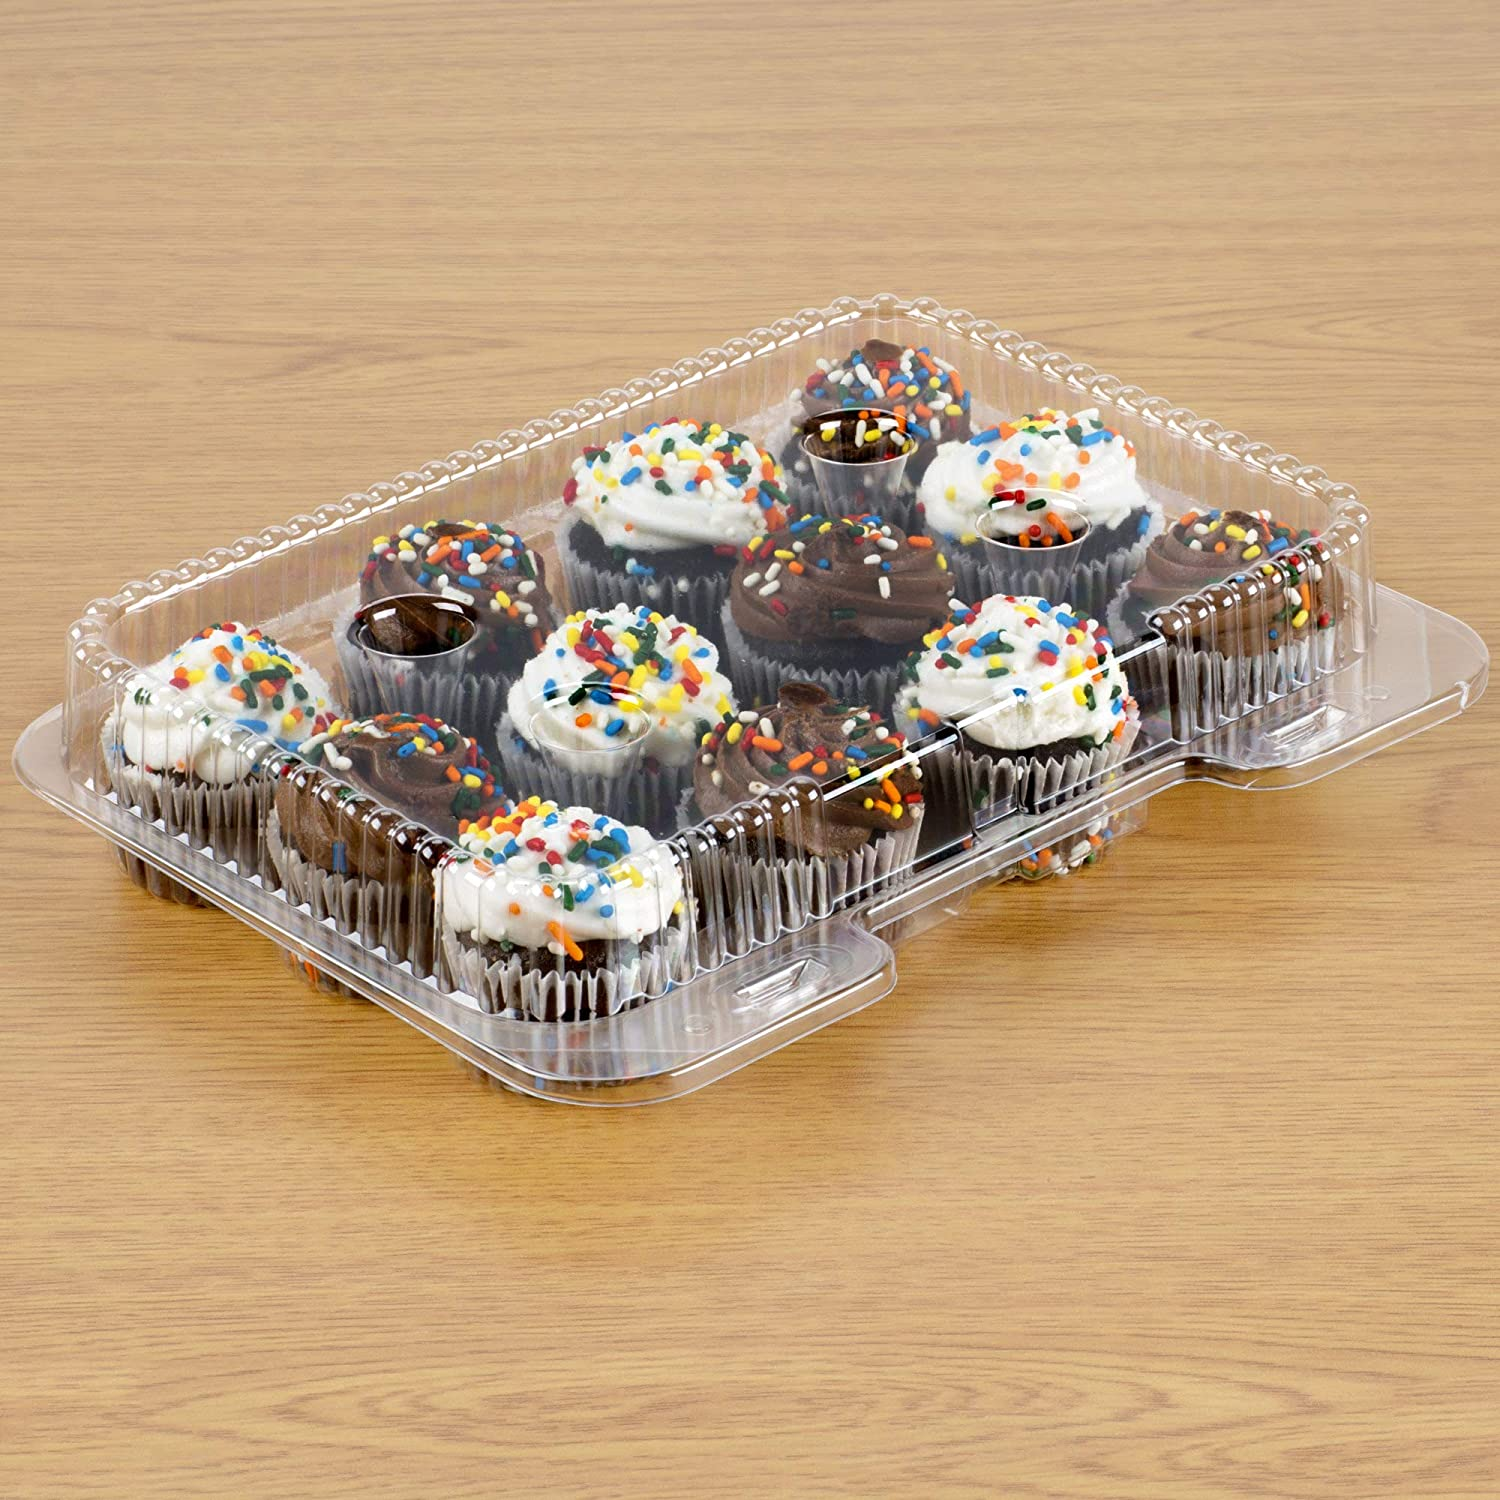 40 Mini Cupcake Boxes | Mini Cupcake Container 12 Compartment – Clear Plastic Mini Cupcake Carrier | Mini Muffin Holders - Small Cupcake Clamshell | Disposable Cupcake Packaging Transporter